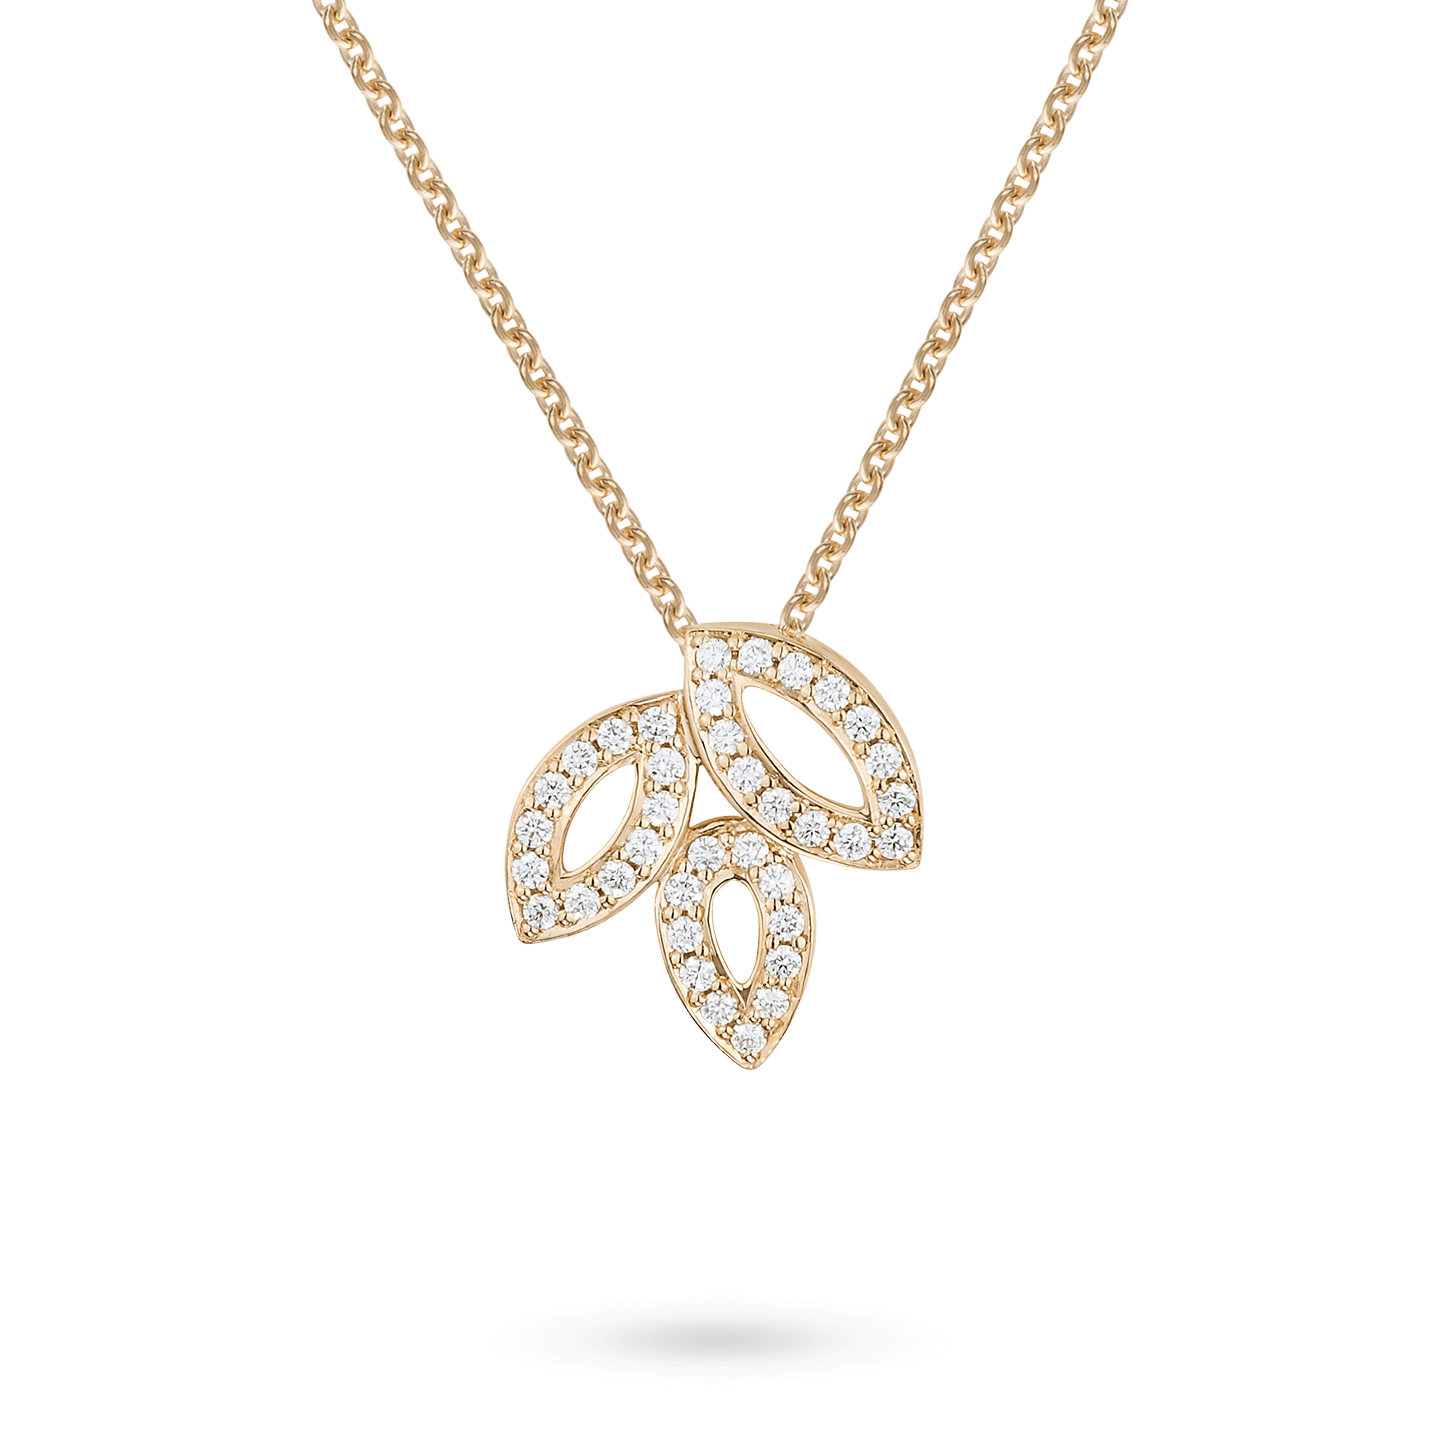 Lily Cluster Small Diamond Pendant in Yellow Gold, Product Image 1